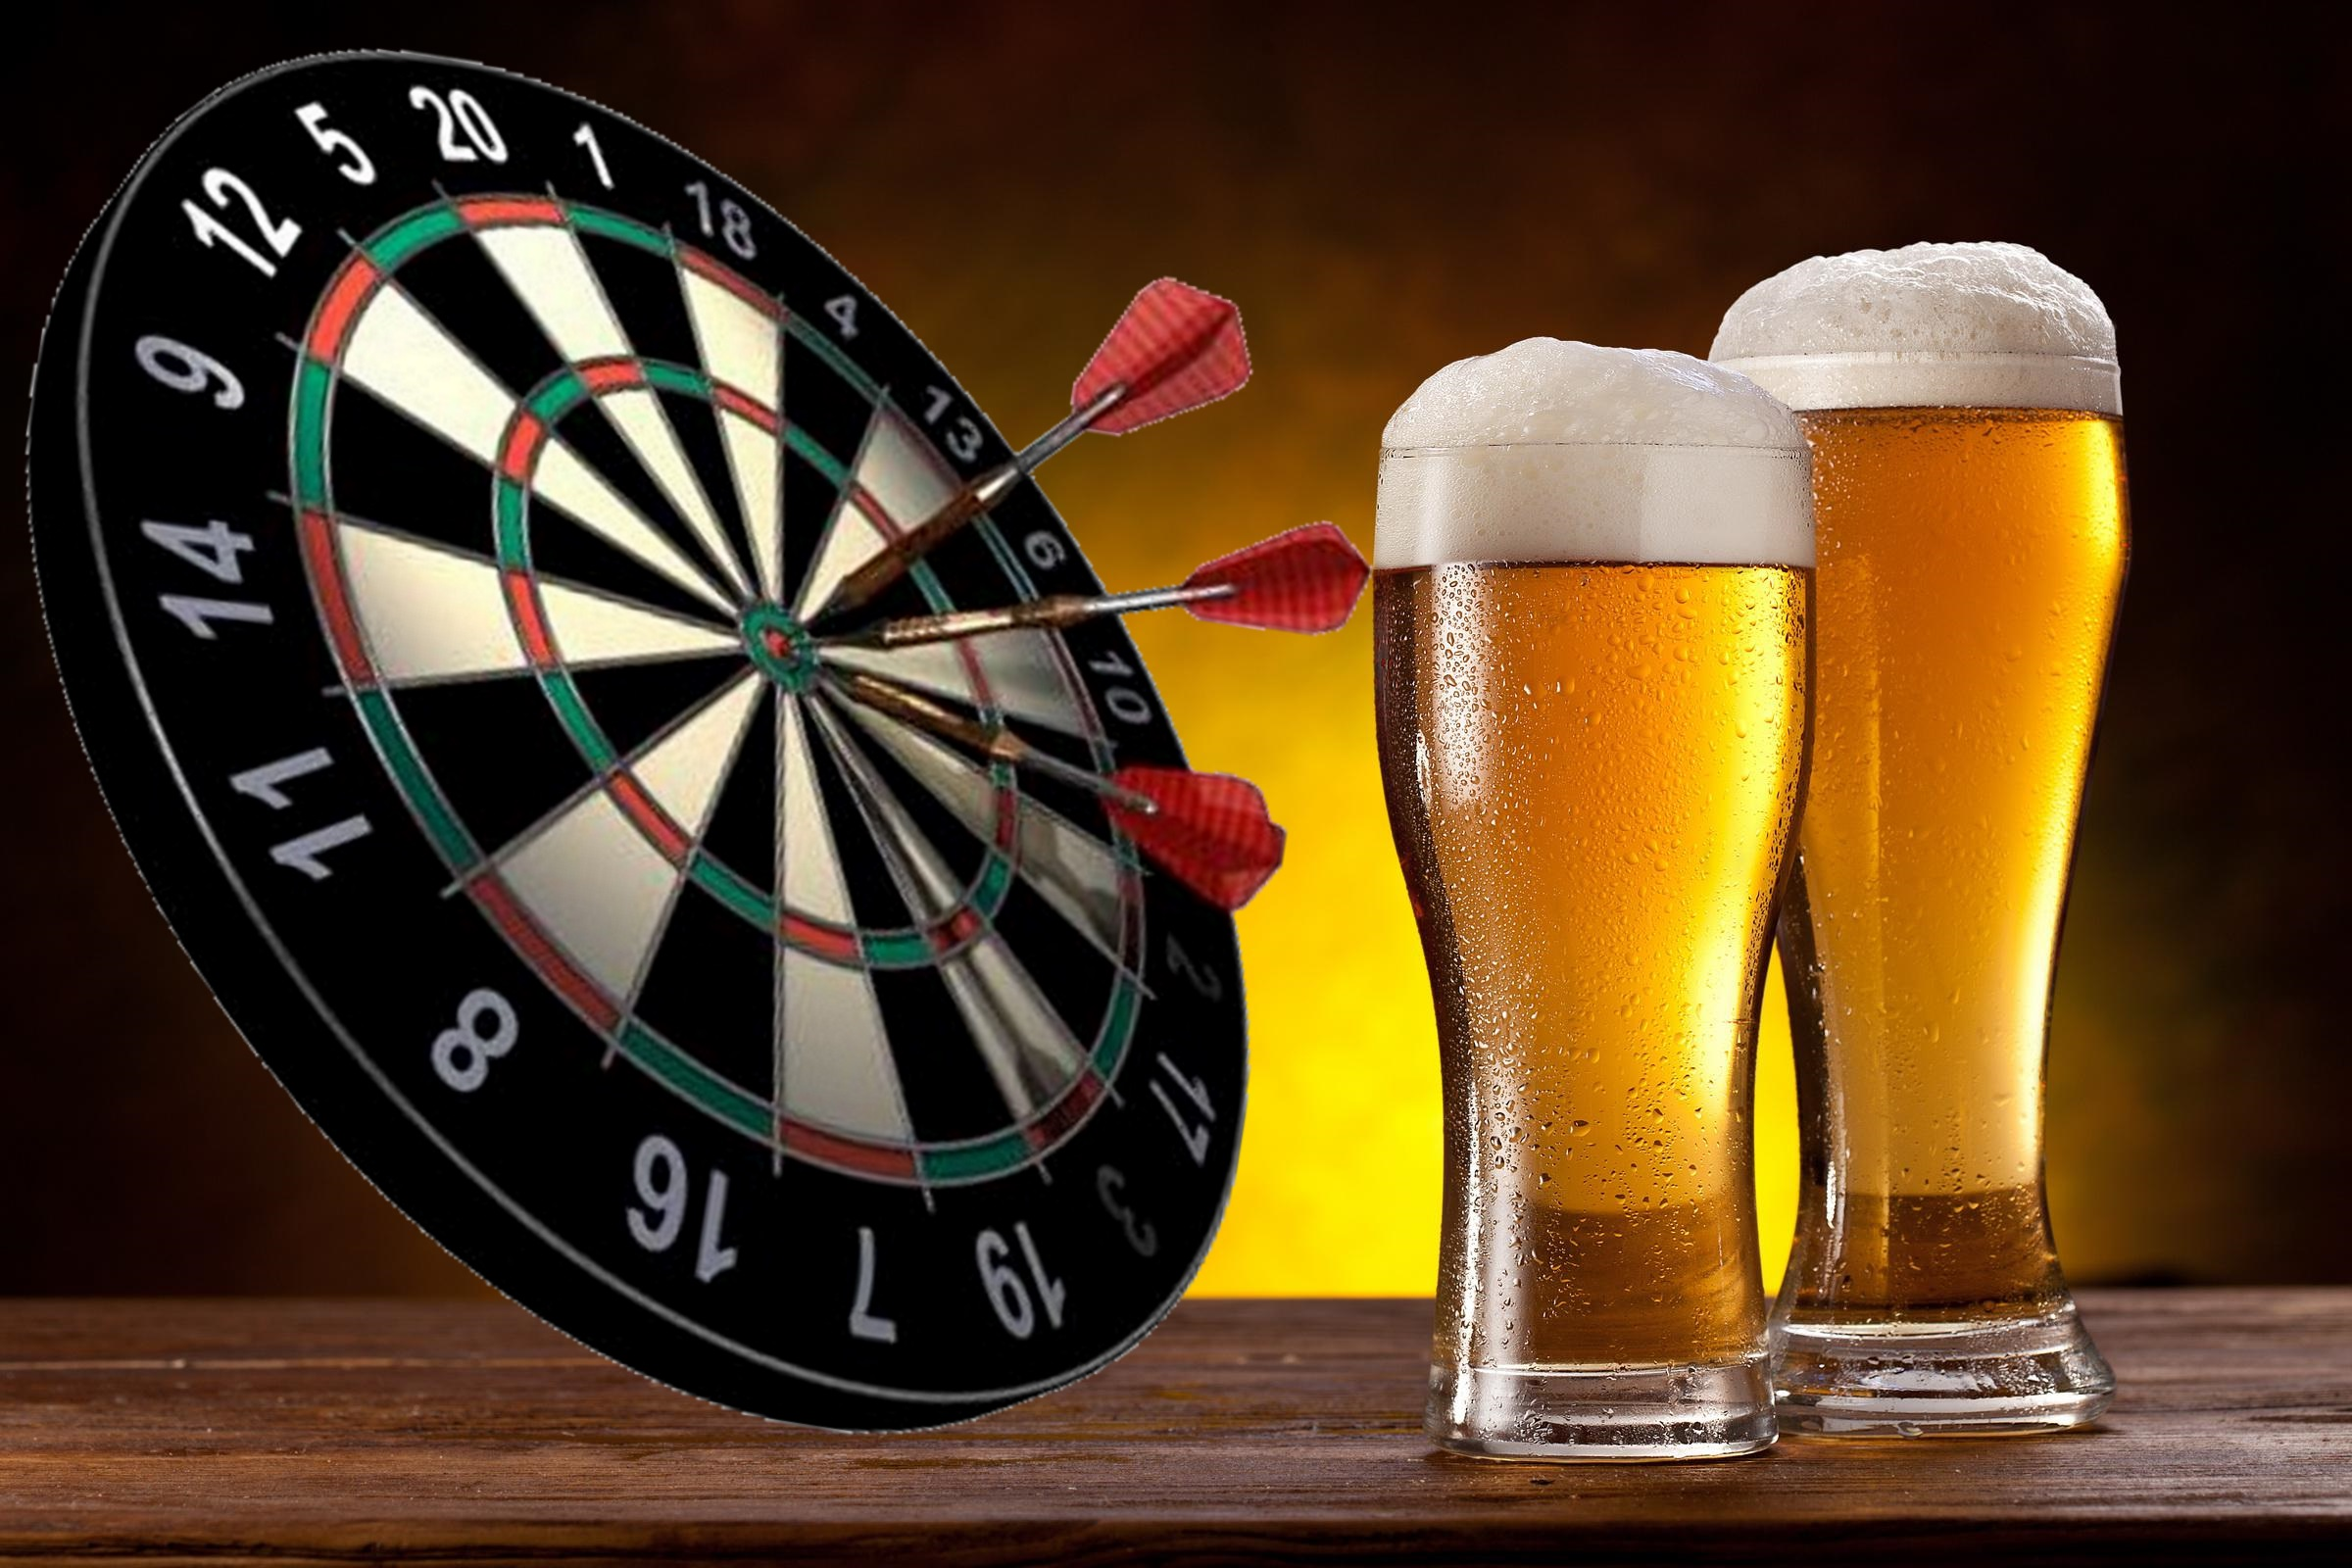 General Poor's Dartboard and Beer